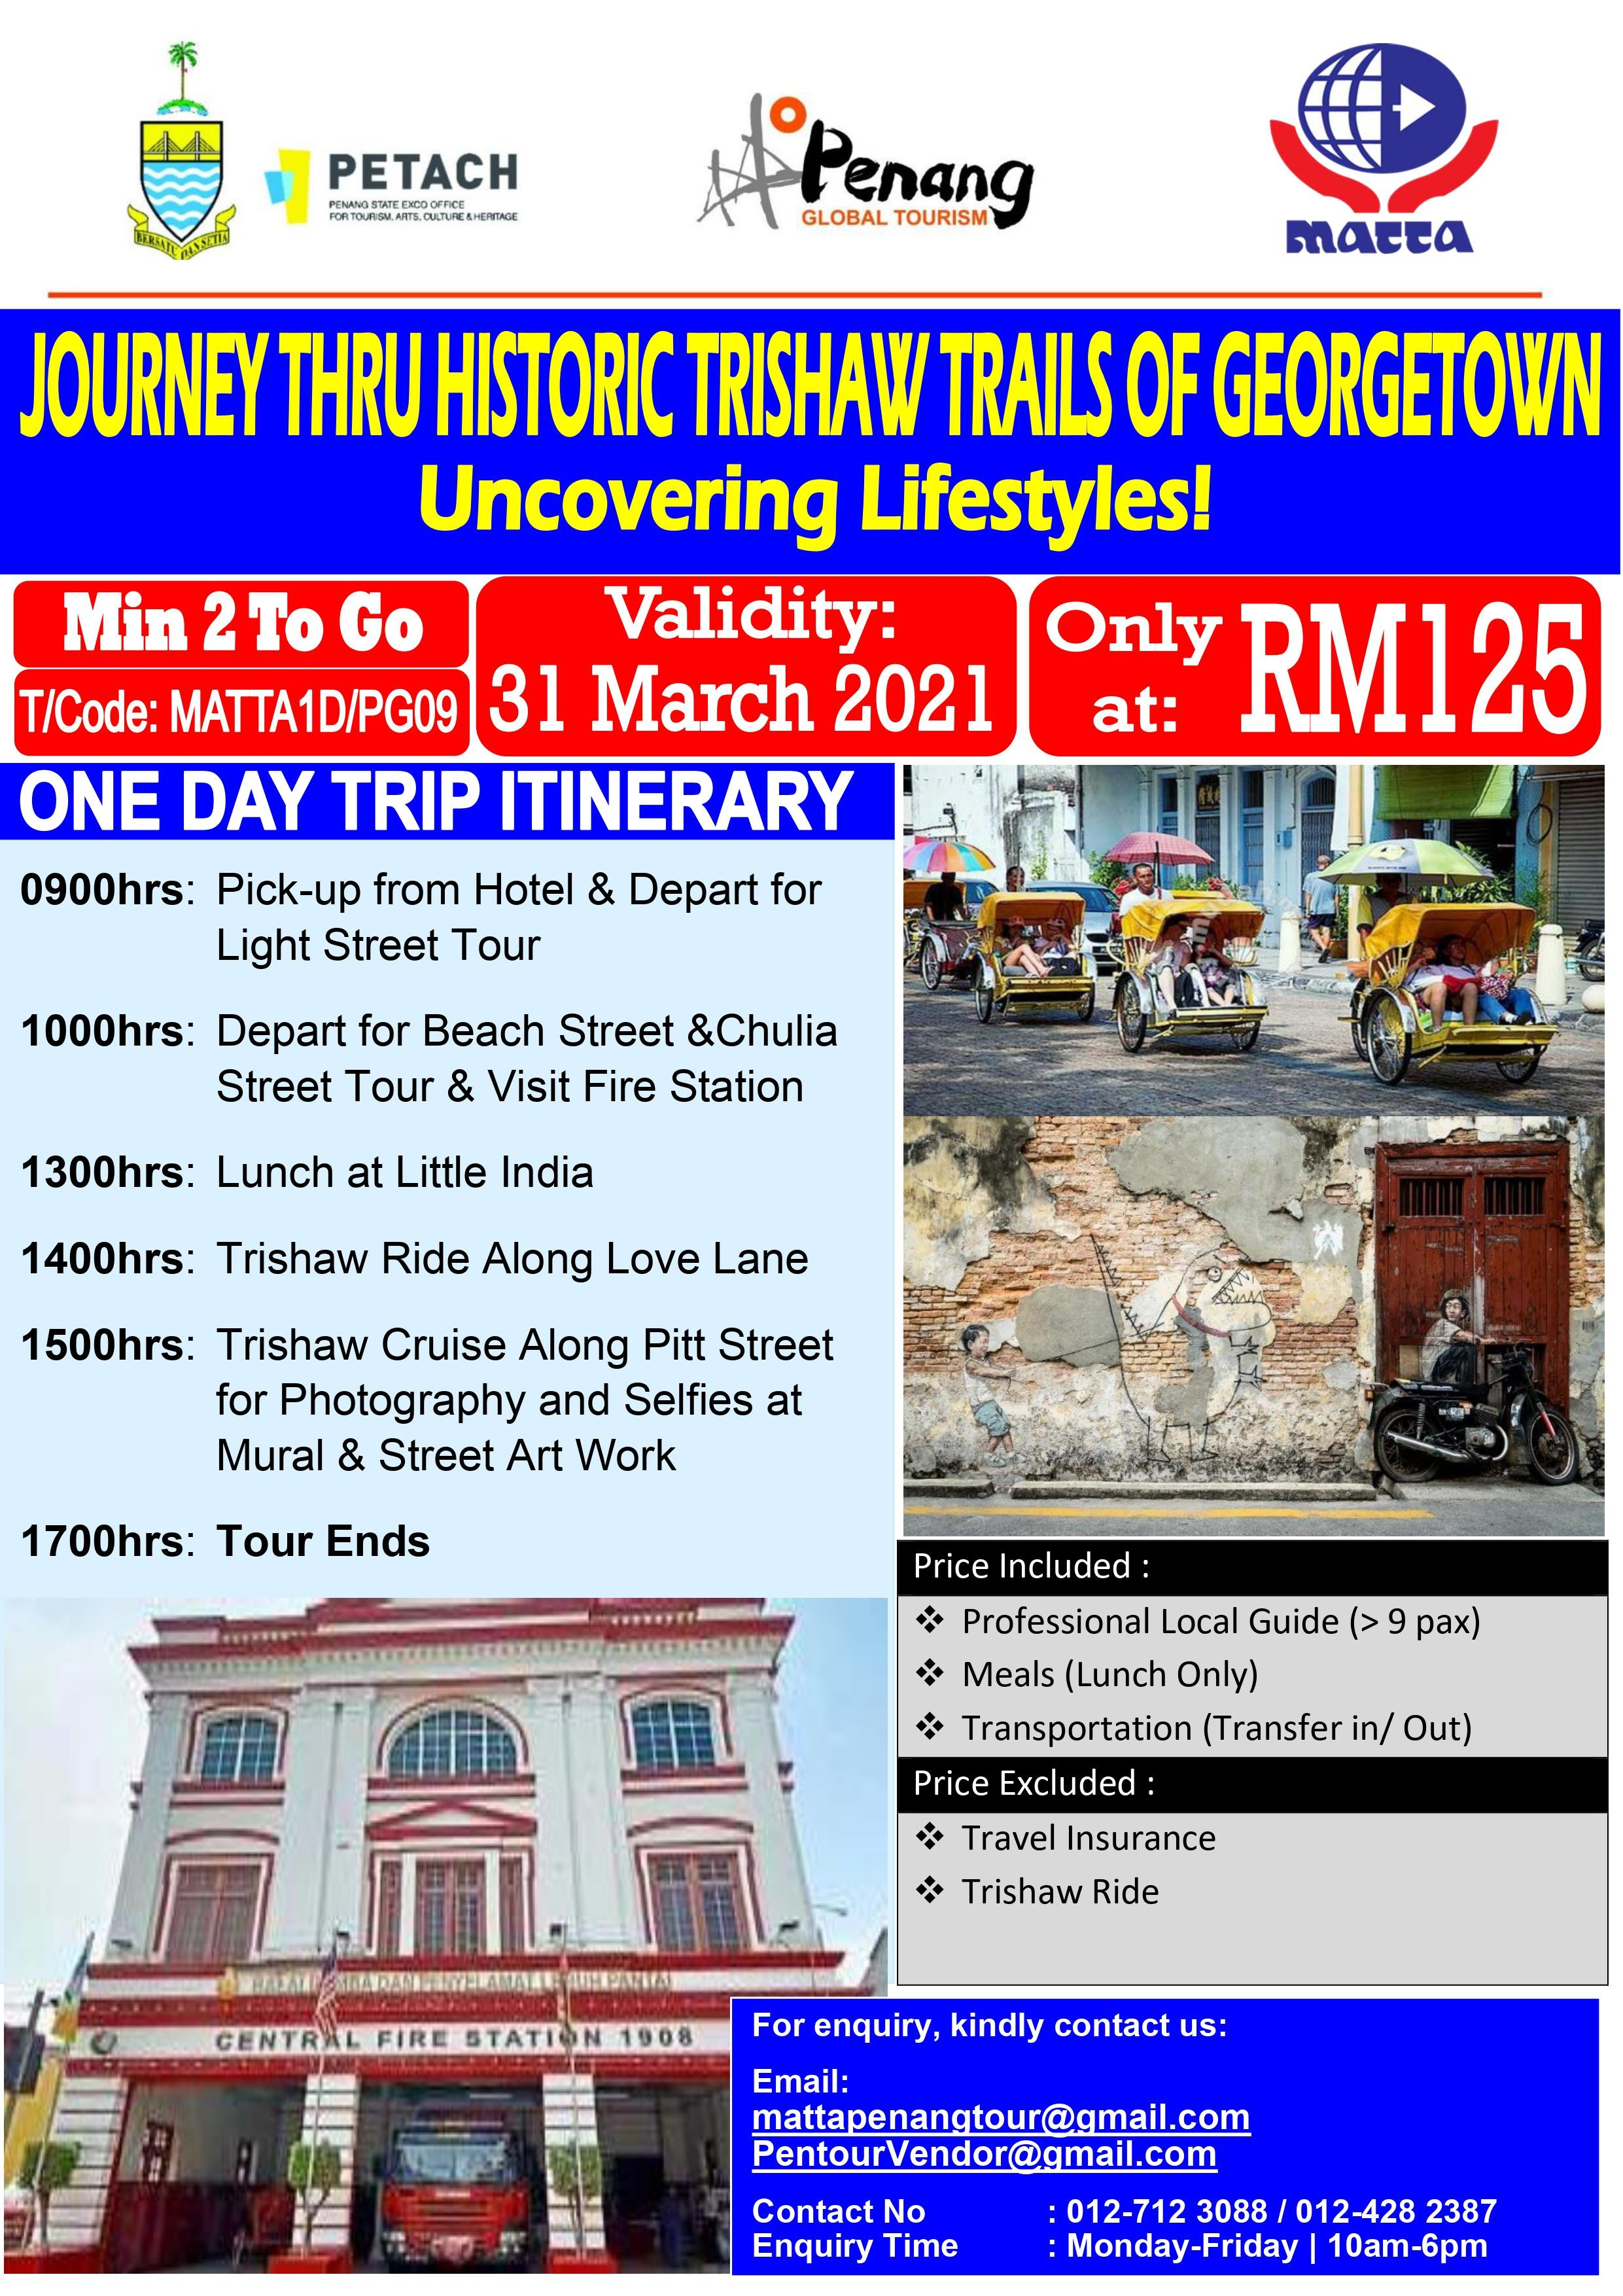 Evening Journey Through Trishaw Trails of Georgetown - 1 Day